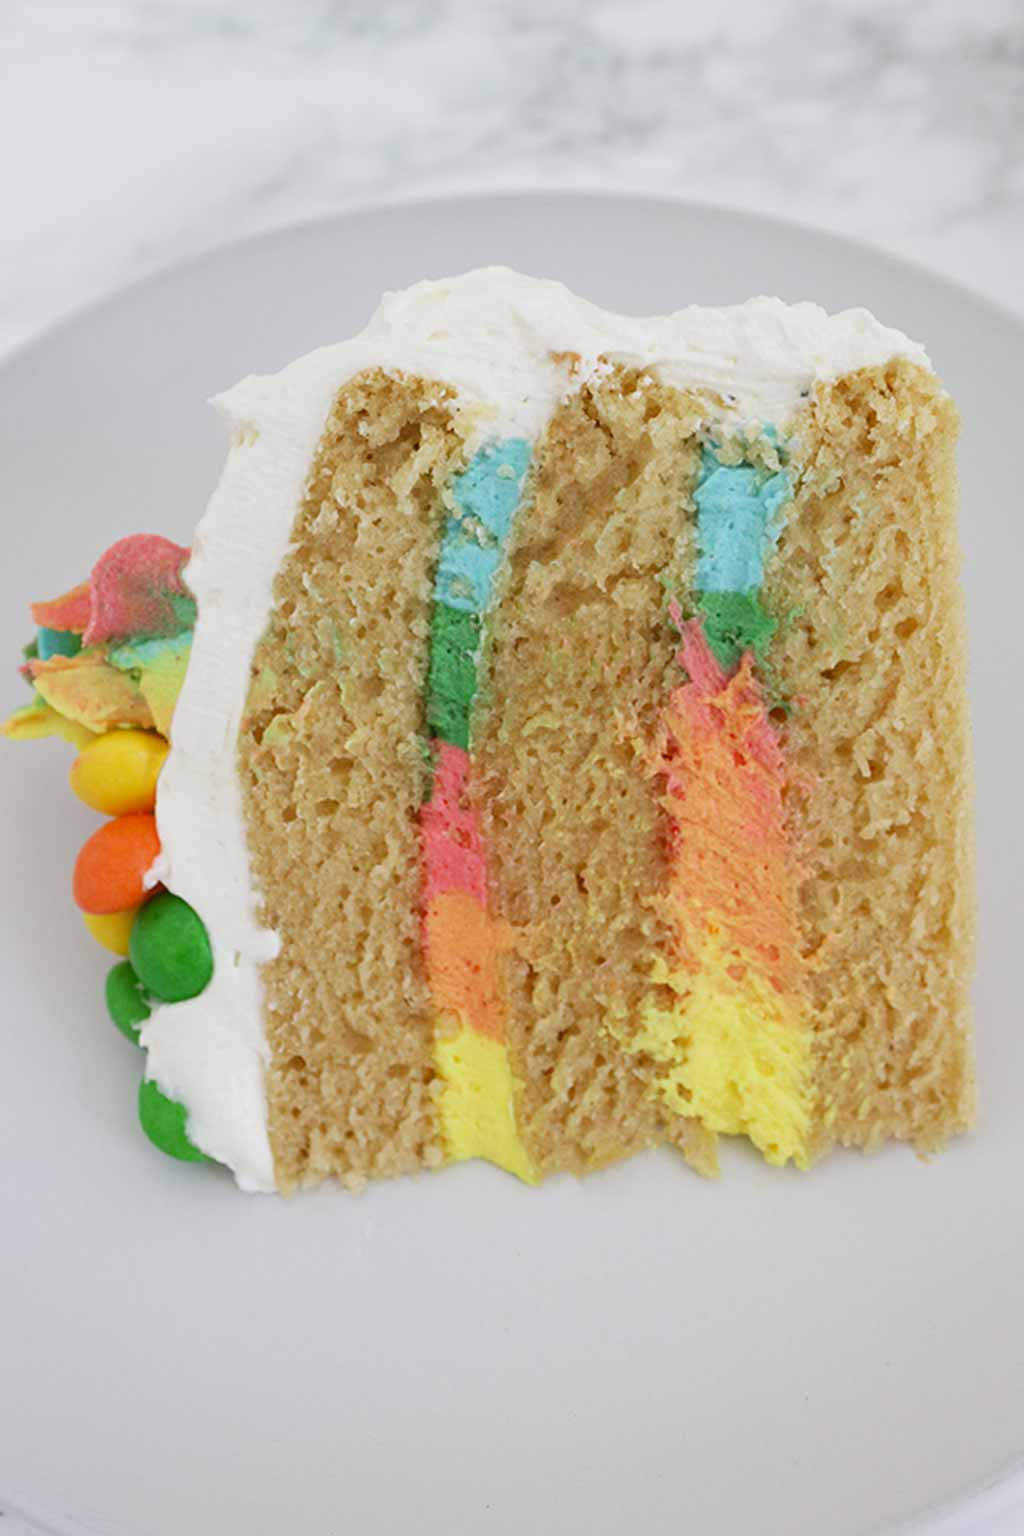 Rainbow Cake Slice with frosting showing in the middle